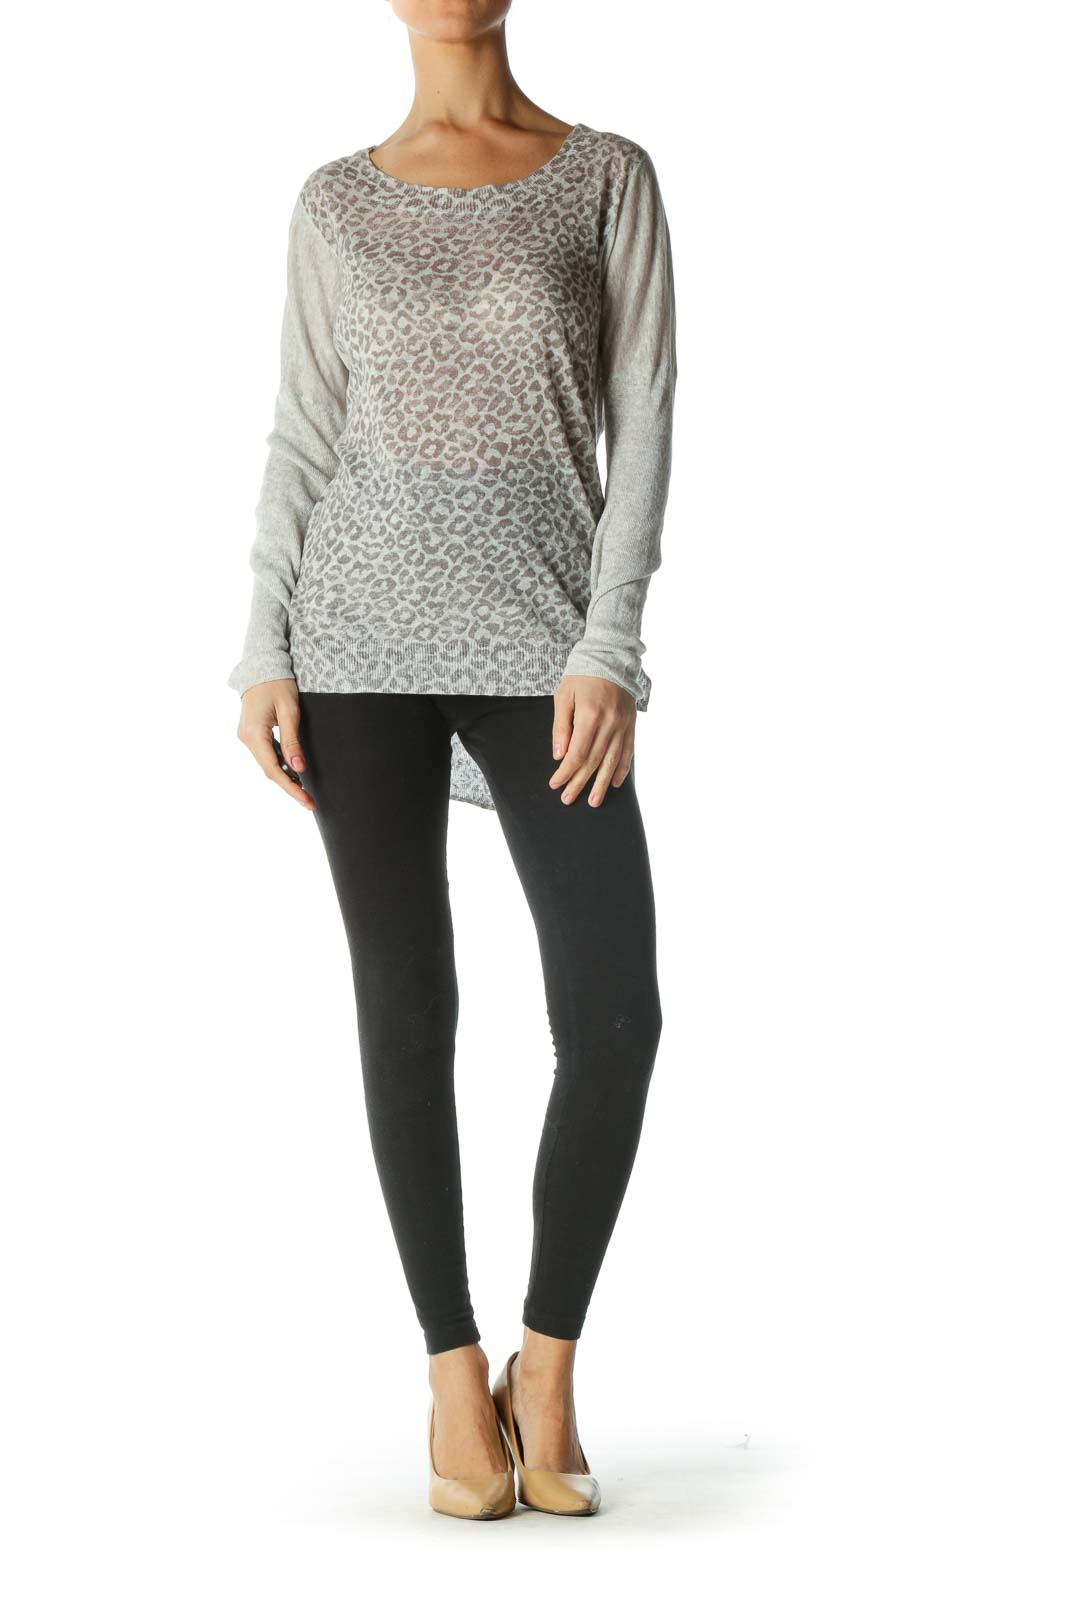 Gray Linen Cotton Animal Print Light Sweater